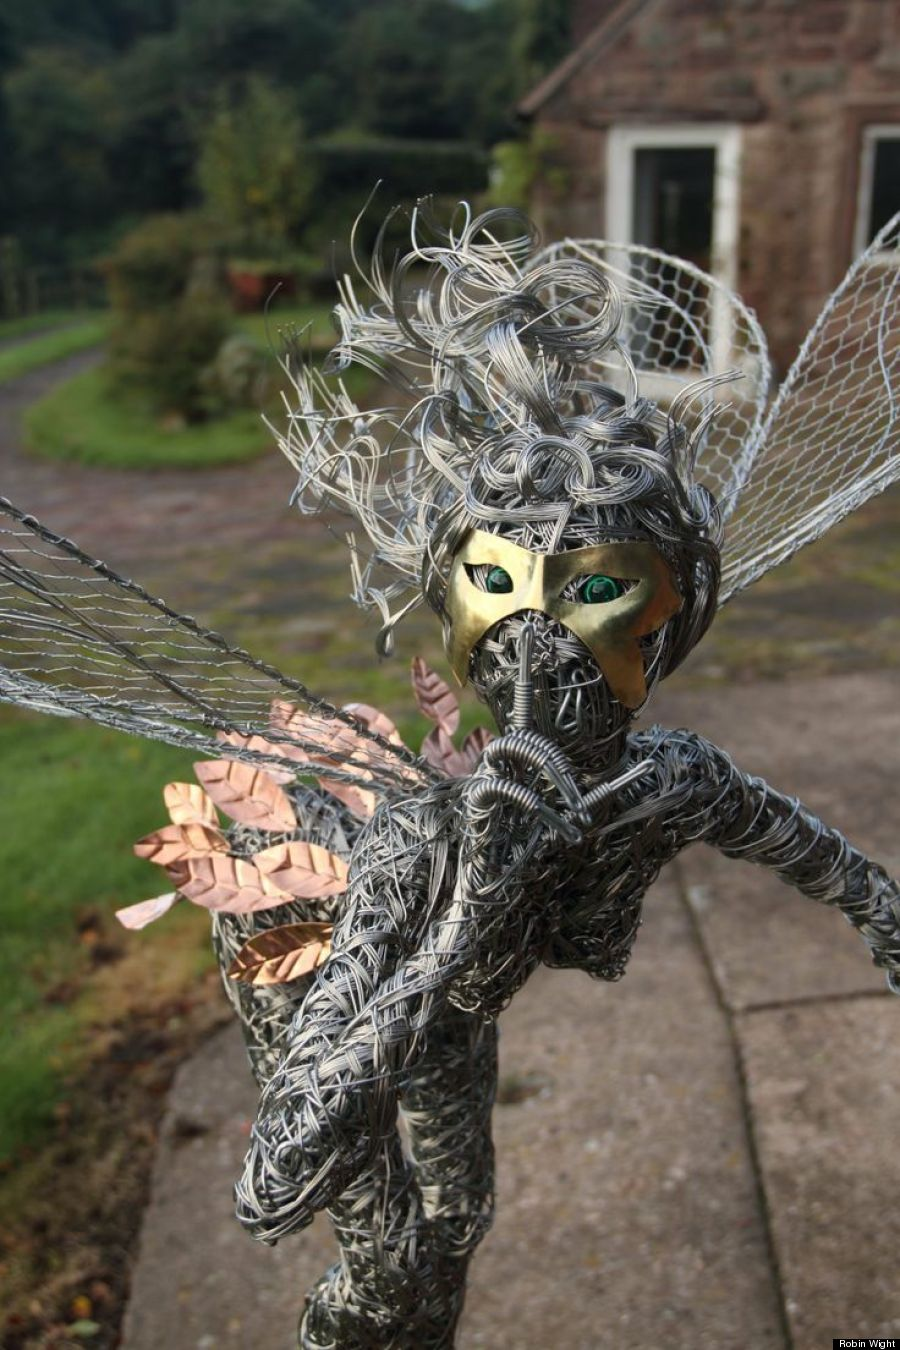 Magical Fairy Sculptures Will Take You To Another World